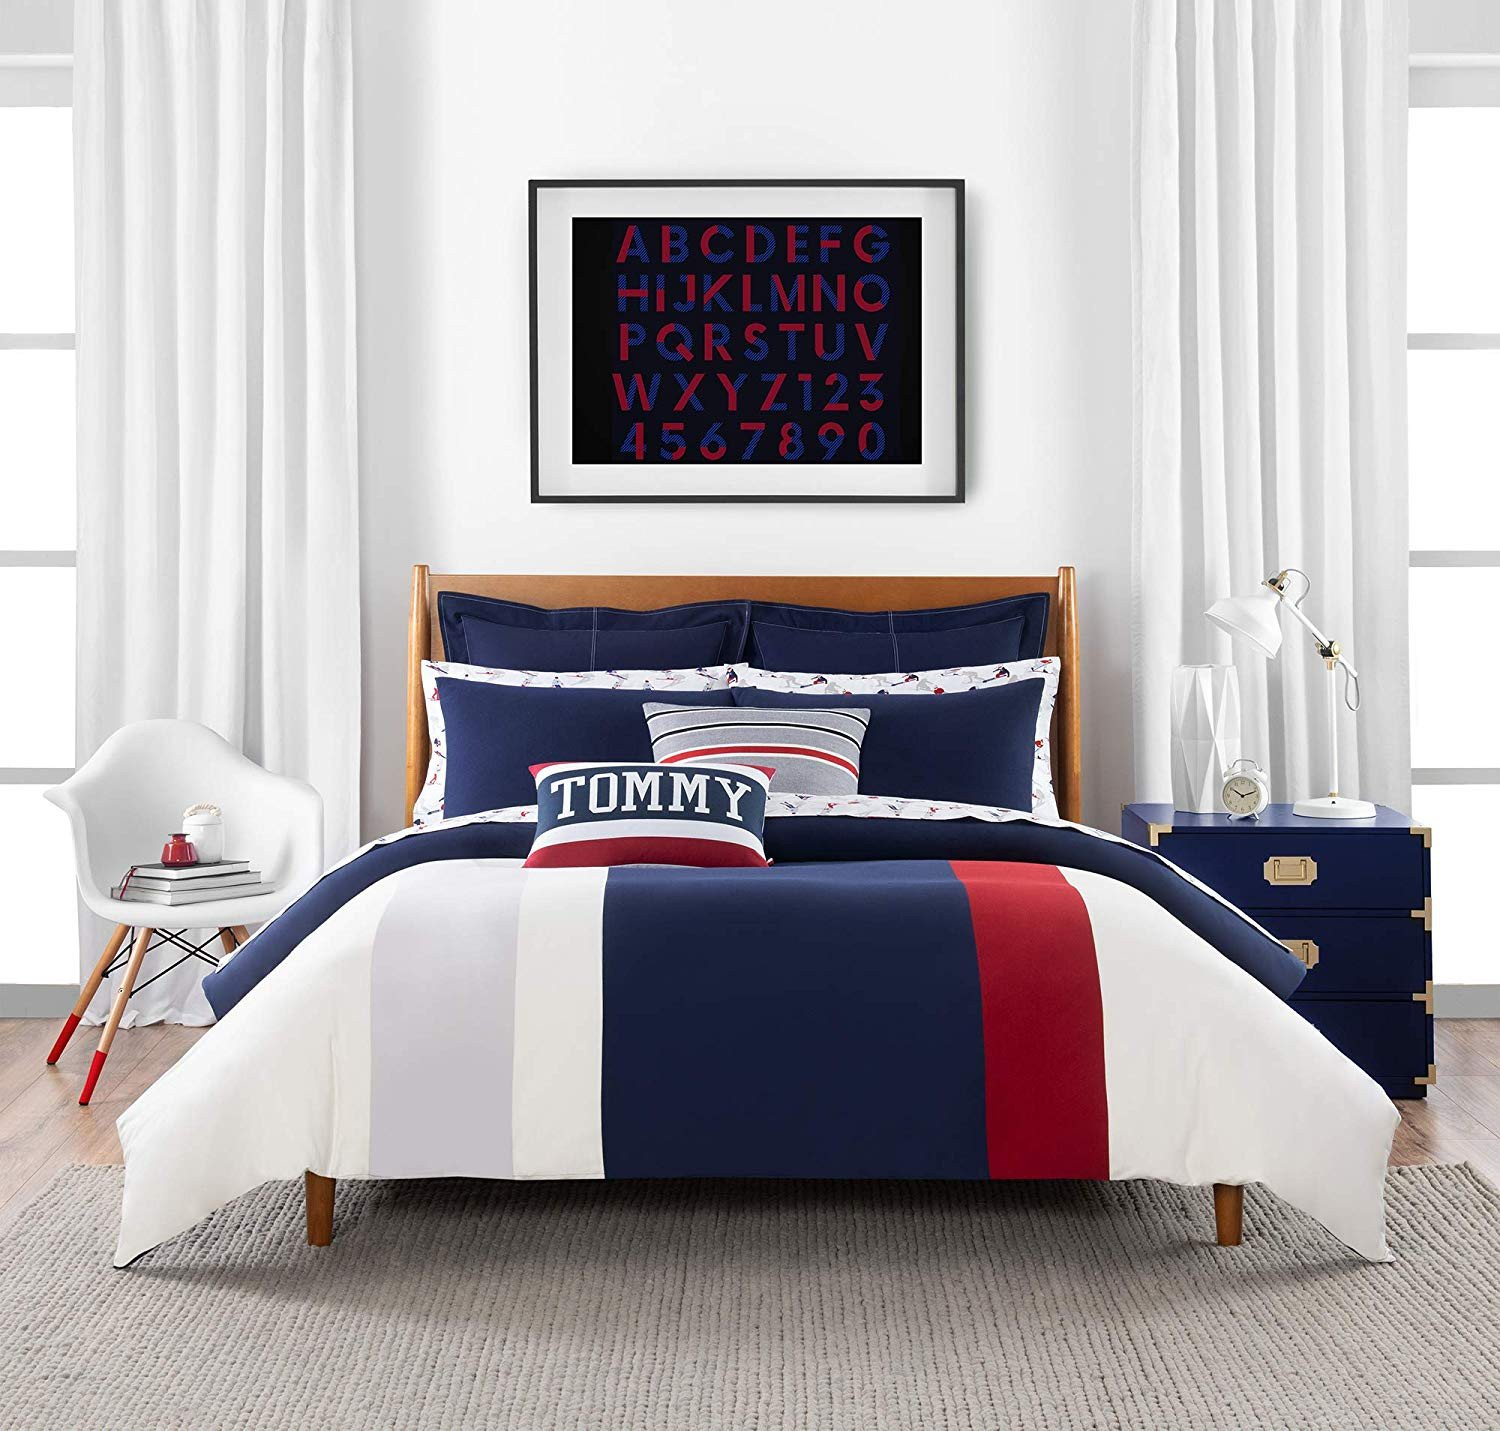 Pink and Grey Bedroom Inspirational Amazon tommy Hilfiger Clash Of 85 Stripe Bedding